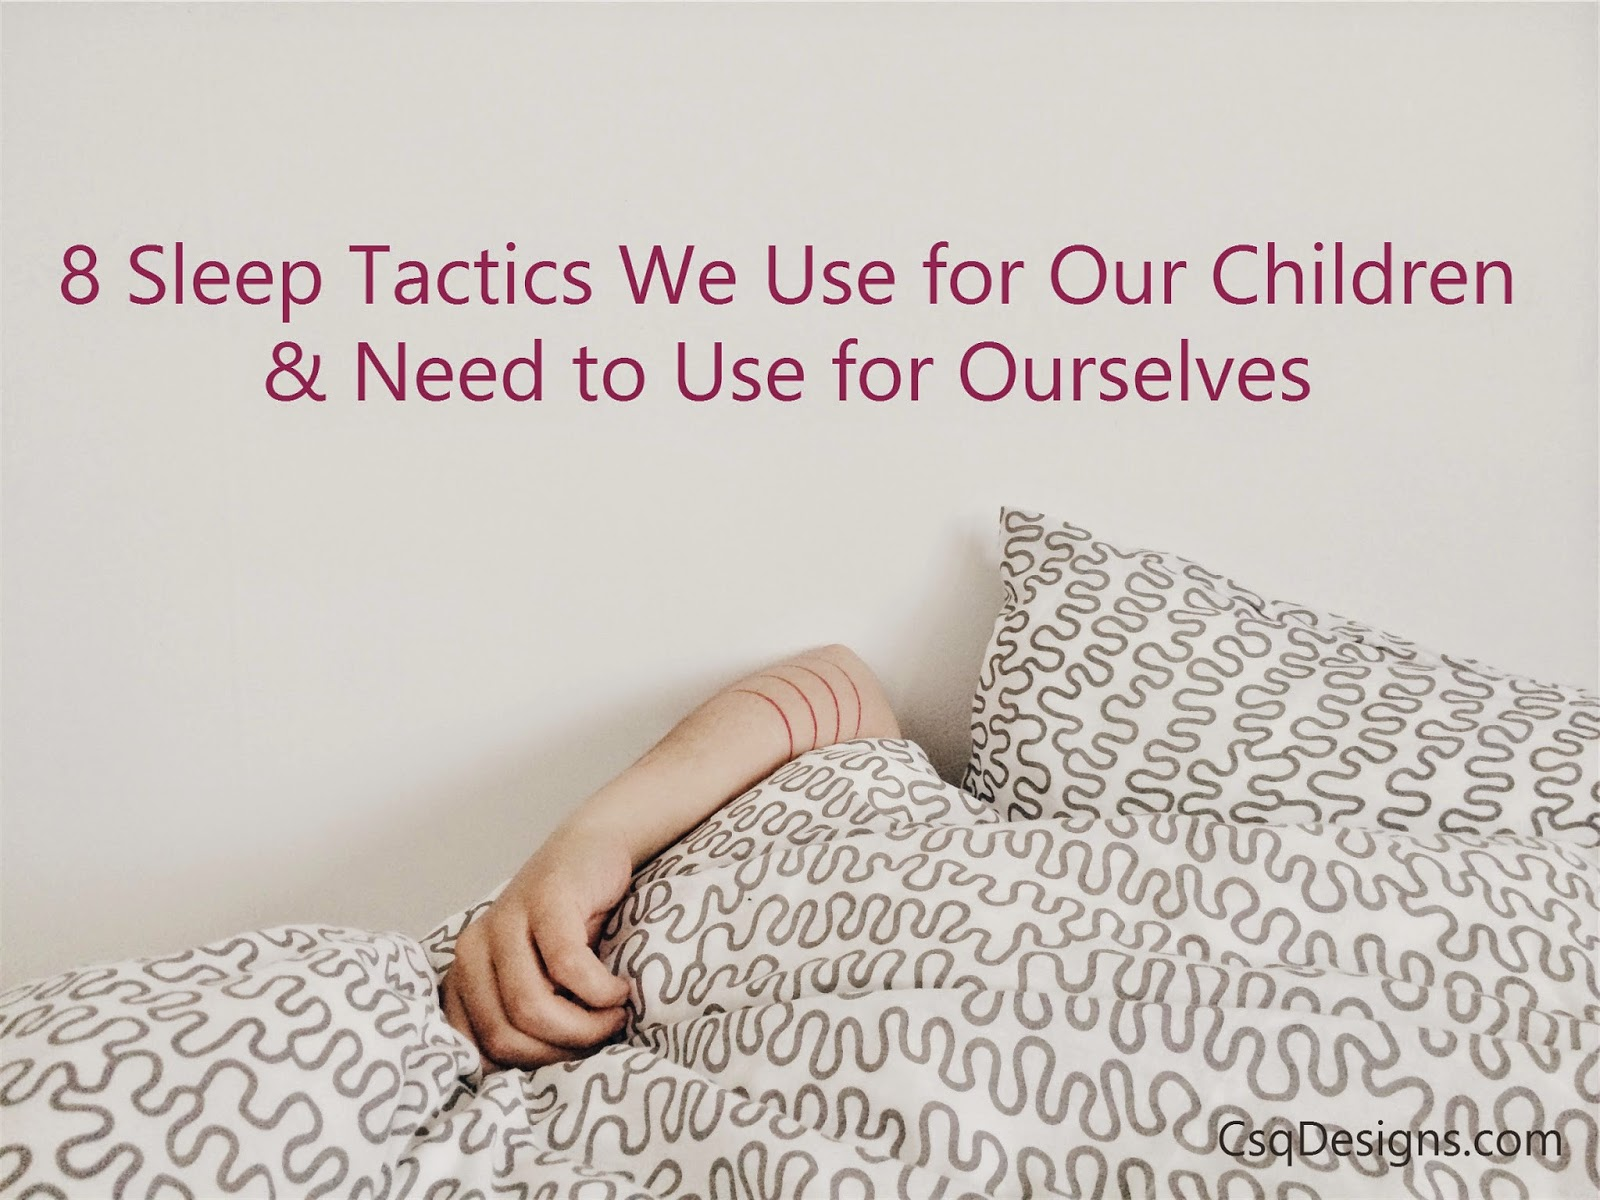 8 Sleep Tactics We Use for Our Children & Need to Use for Ourselves